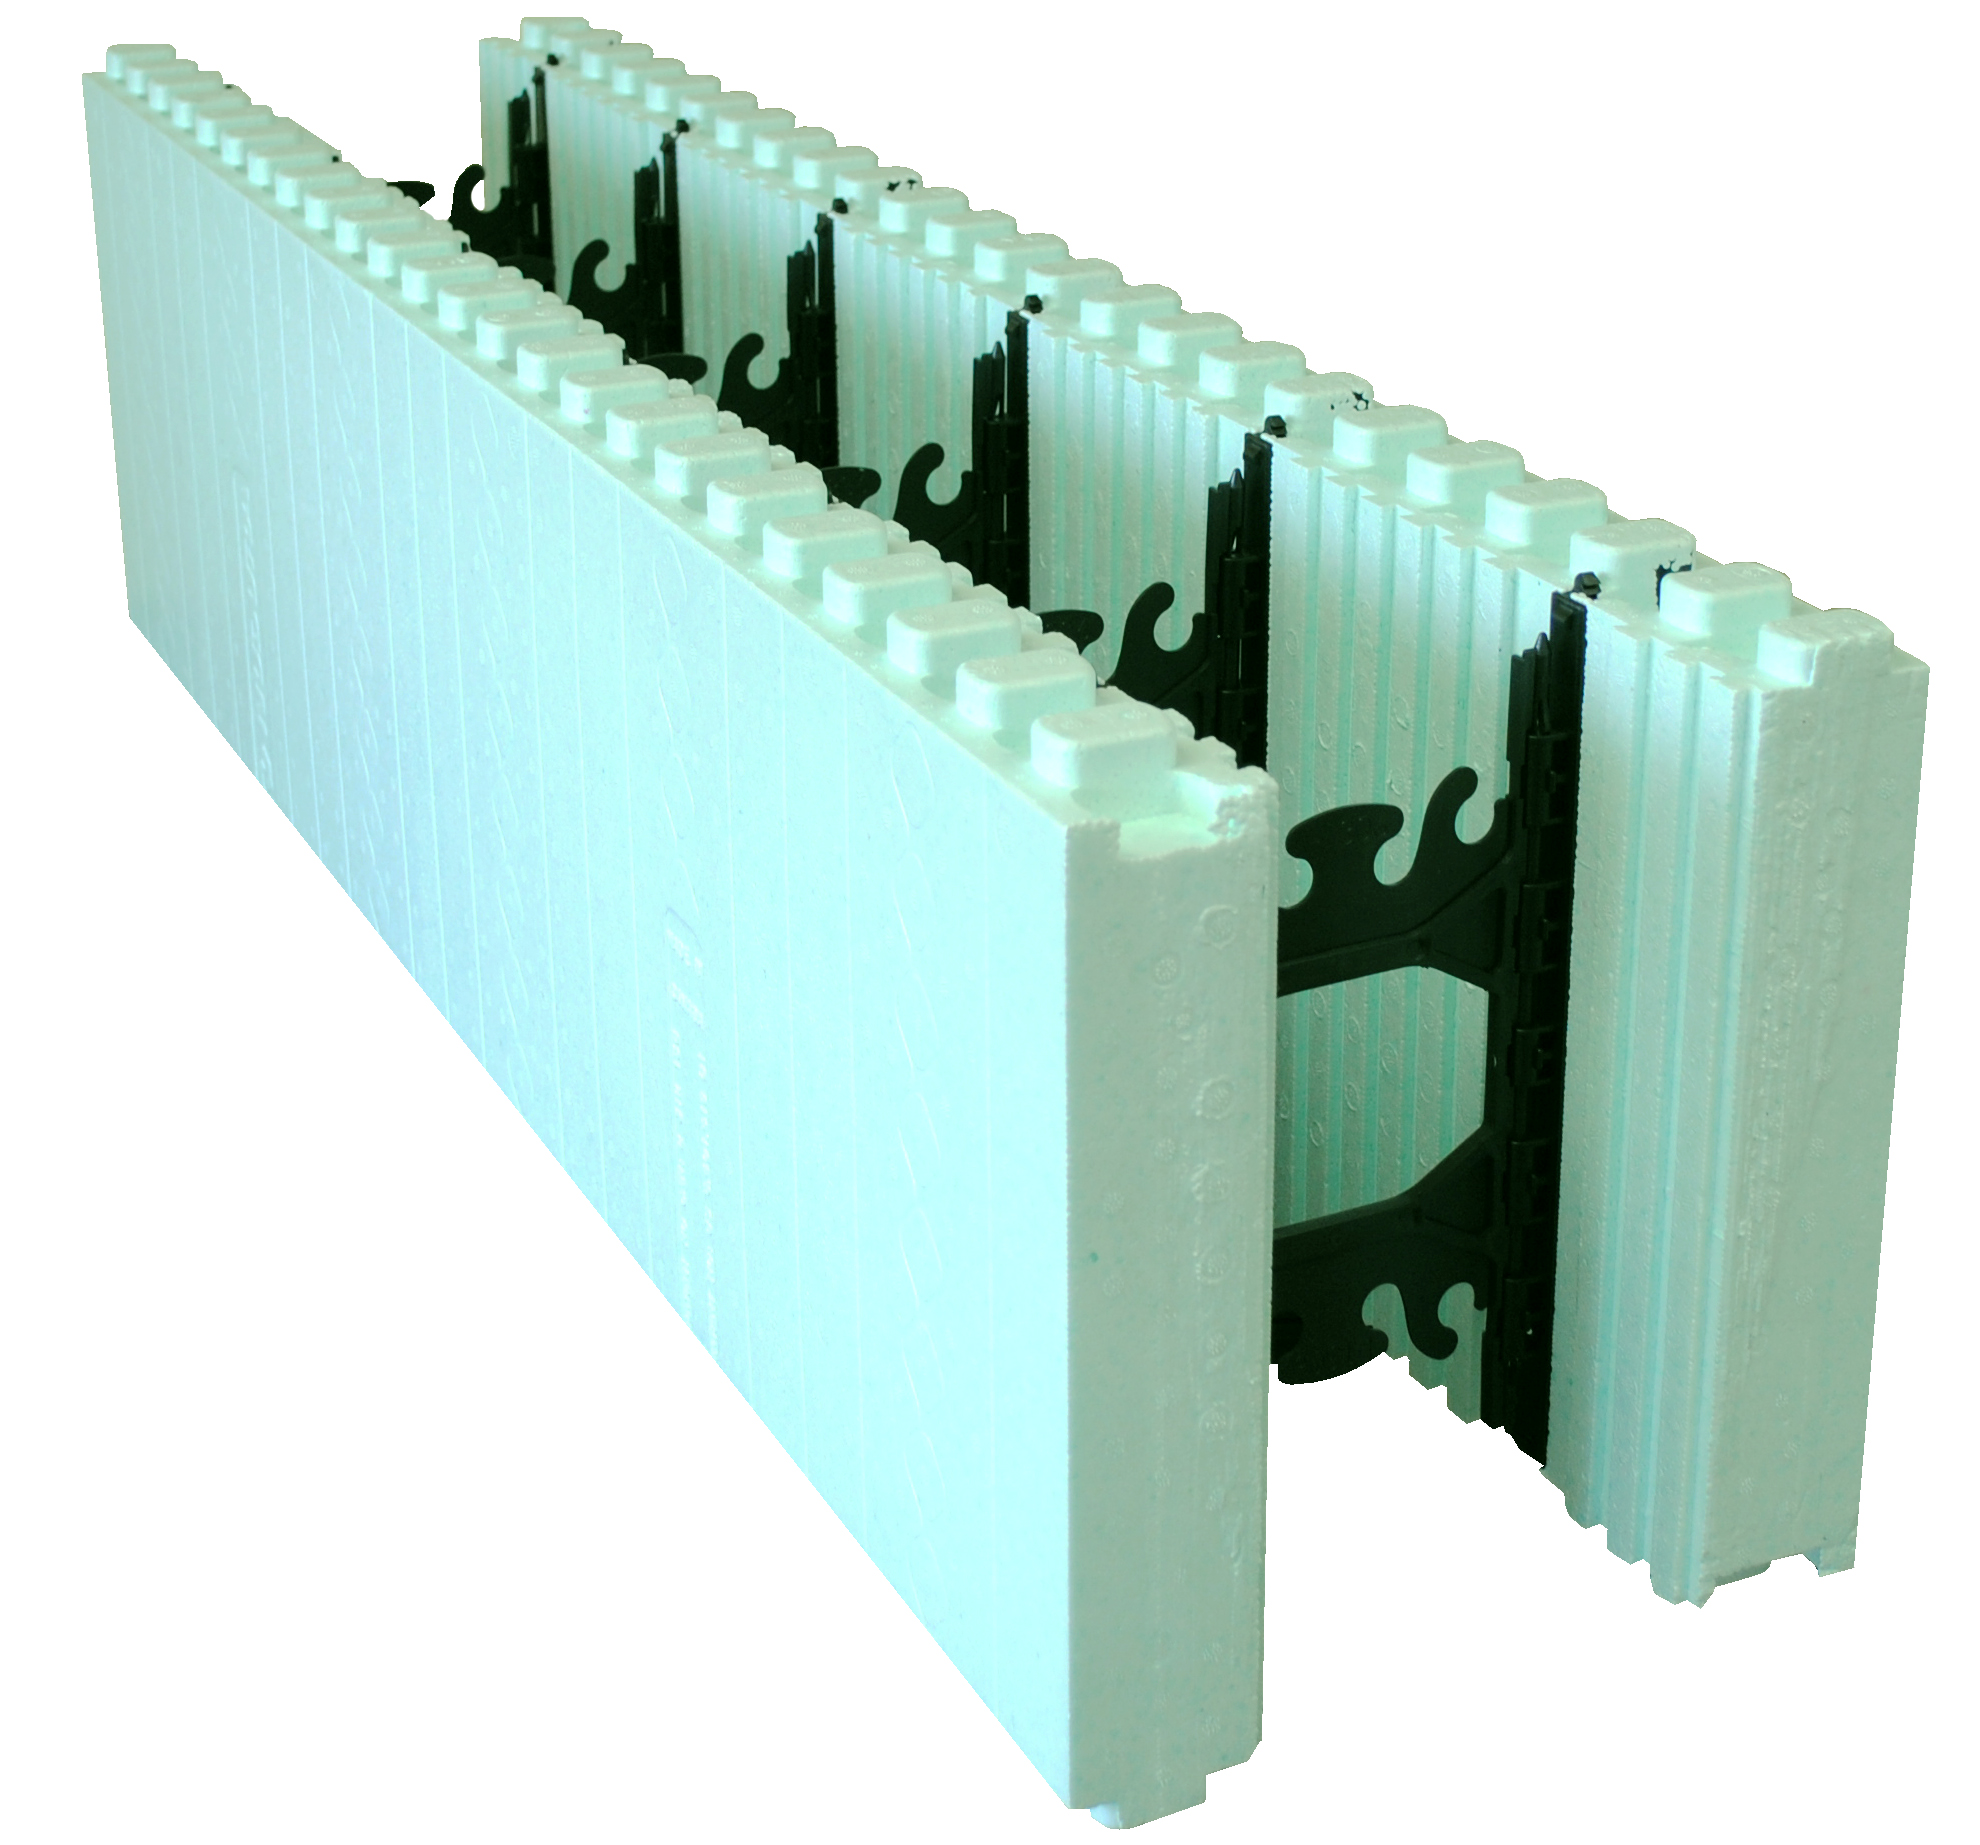 Nudura icf series concrete producer insulating concrete for Nudura icf cost